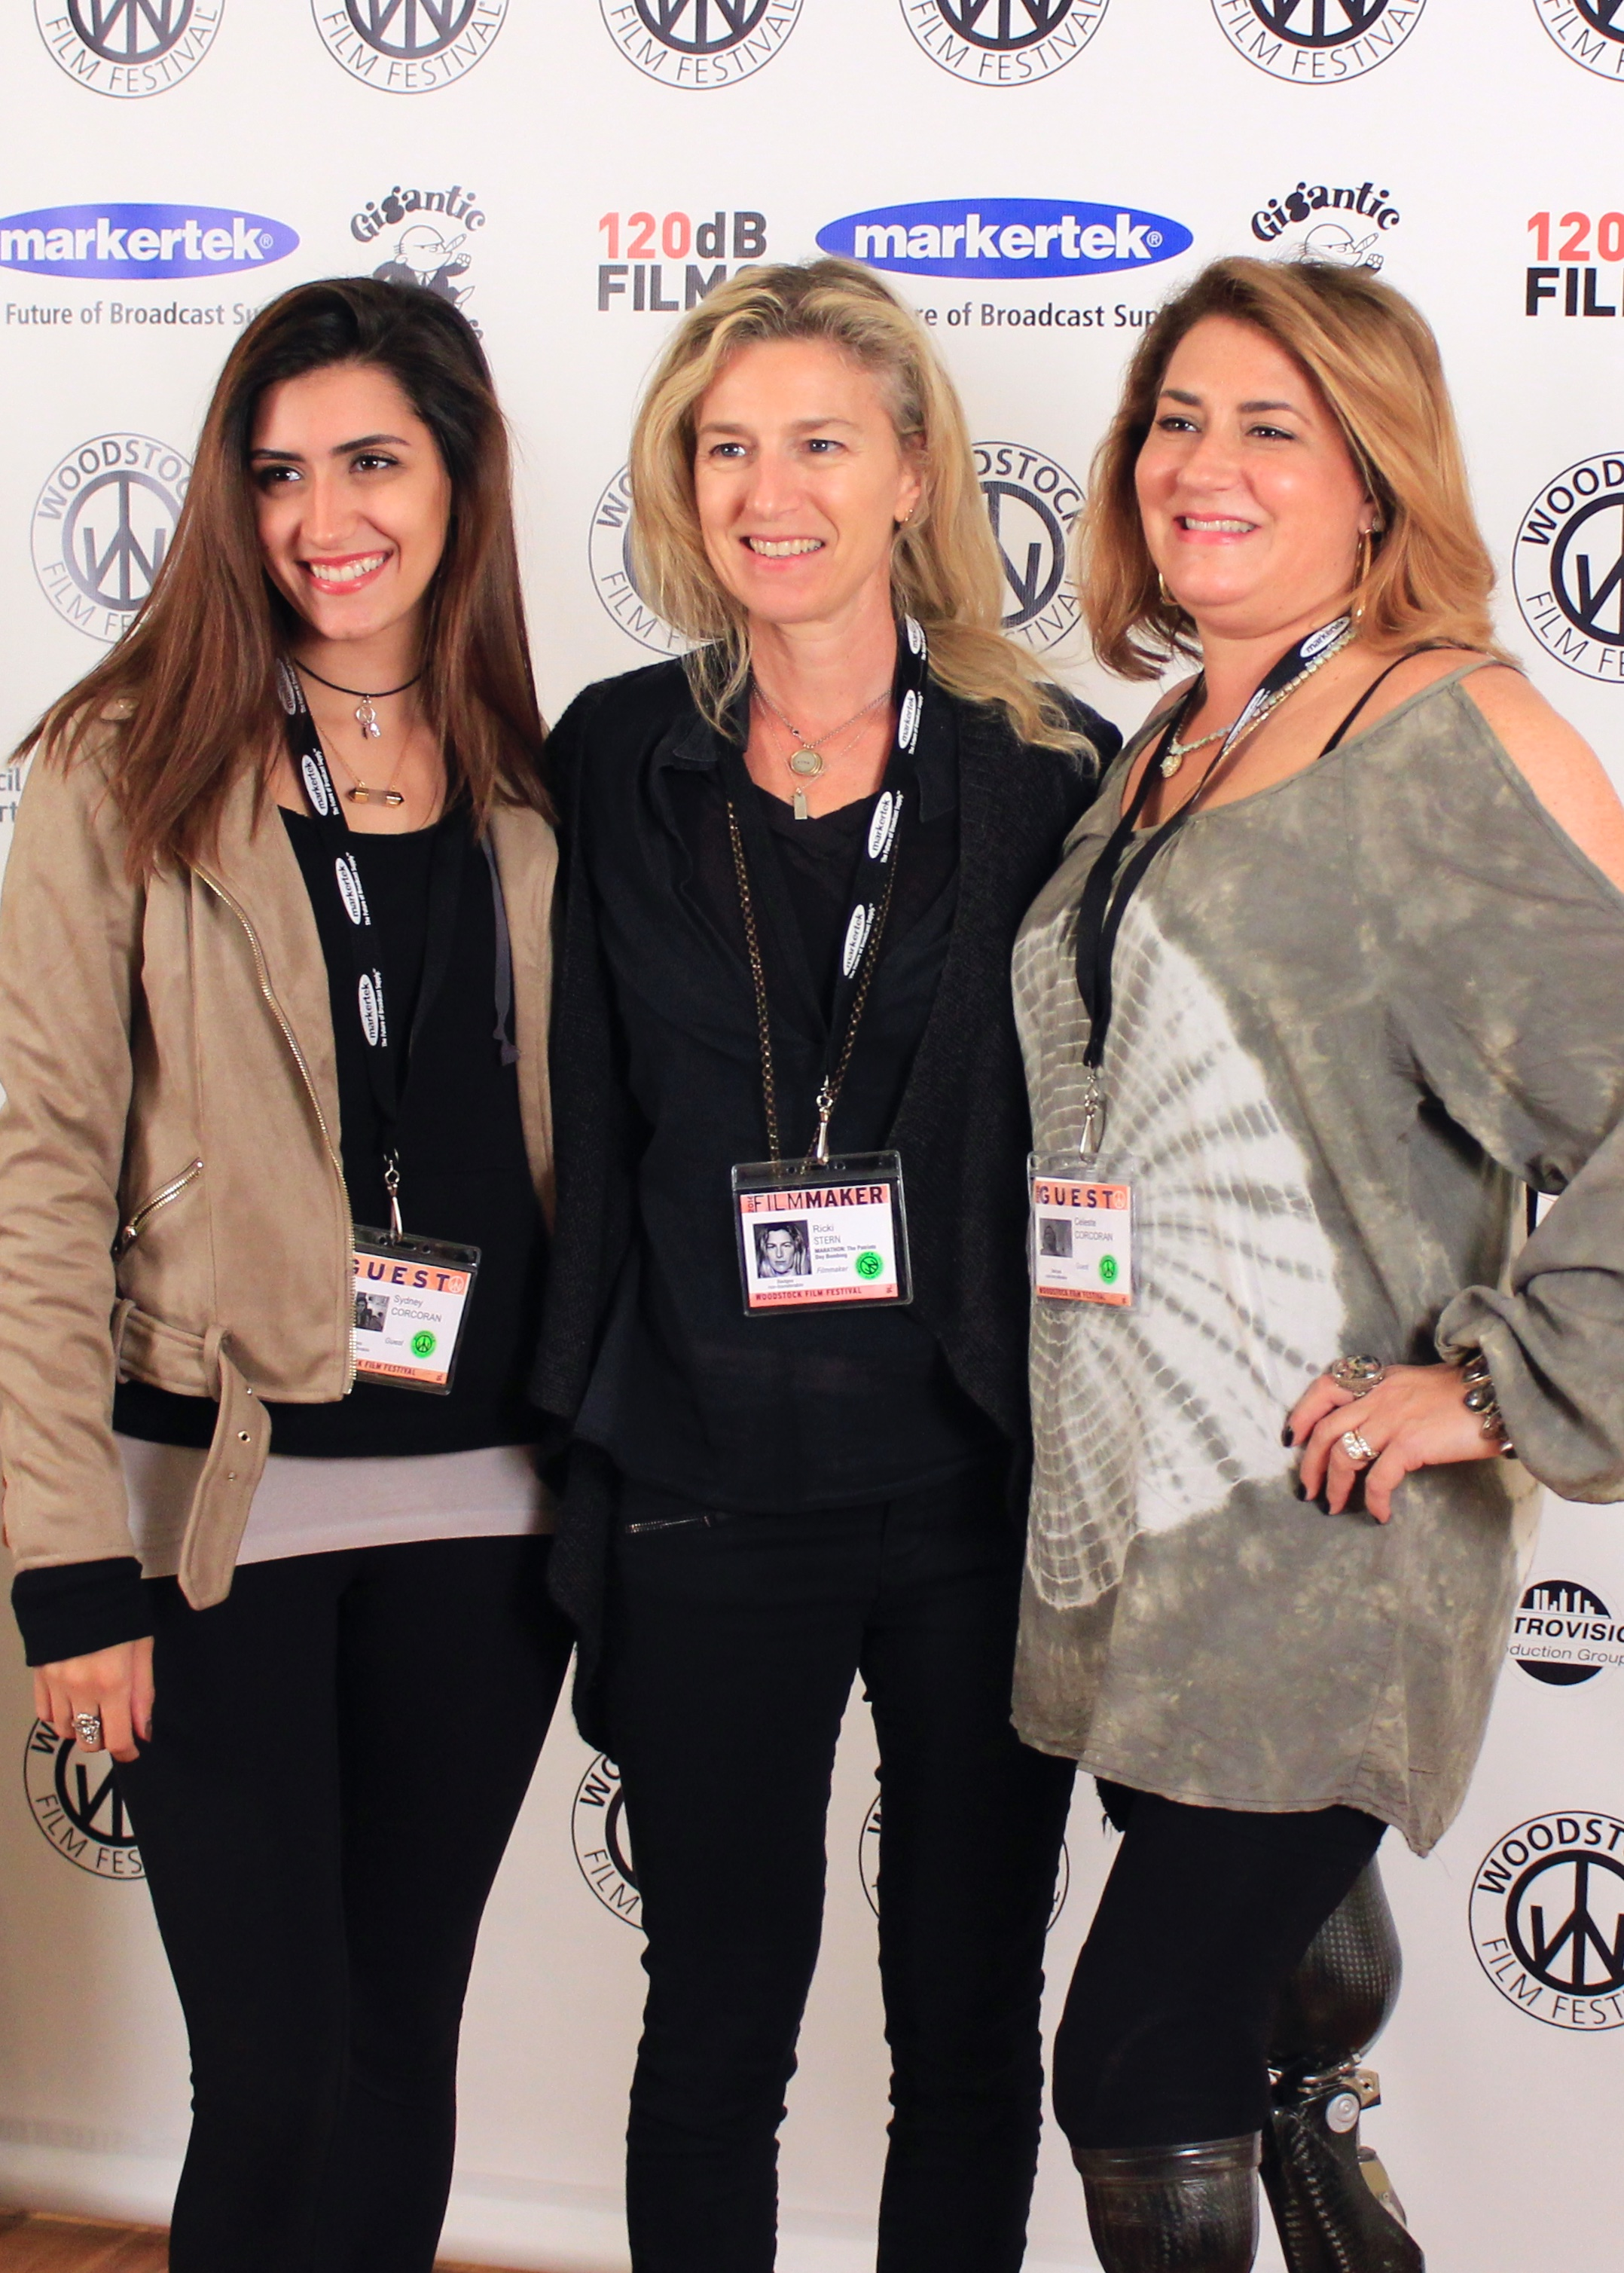 Marathon survivors Celeste and Sydney Corcoran with Director  Ricki Stern  ( Marathon: The Patriots Day Bombing ) at the 17th annual Woodstock Film Festival. Photo by Naomi Schmidt